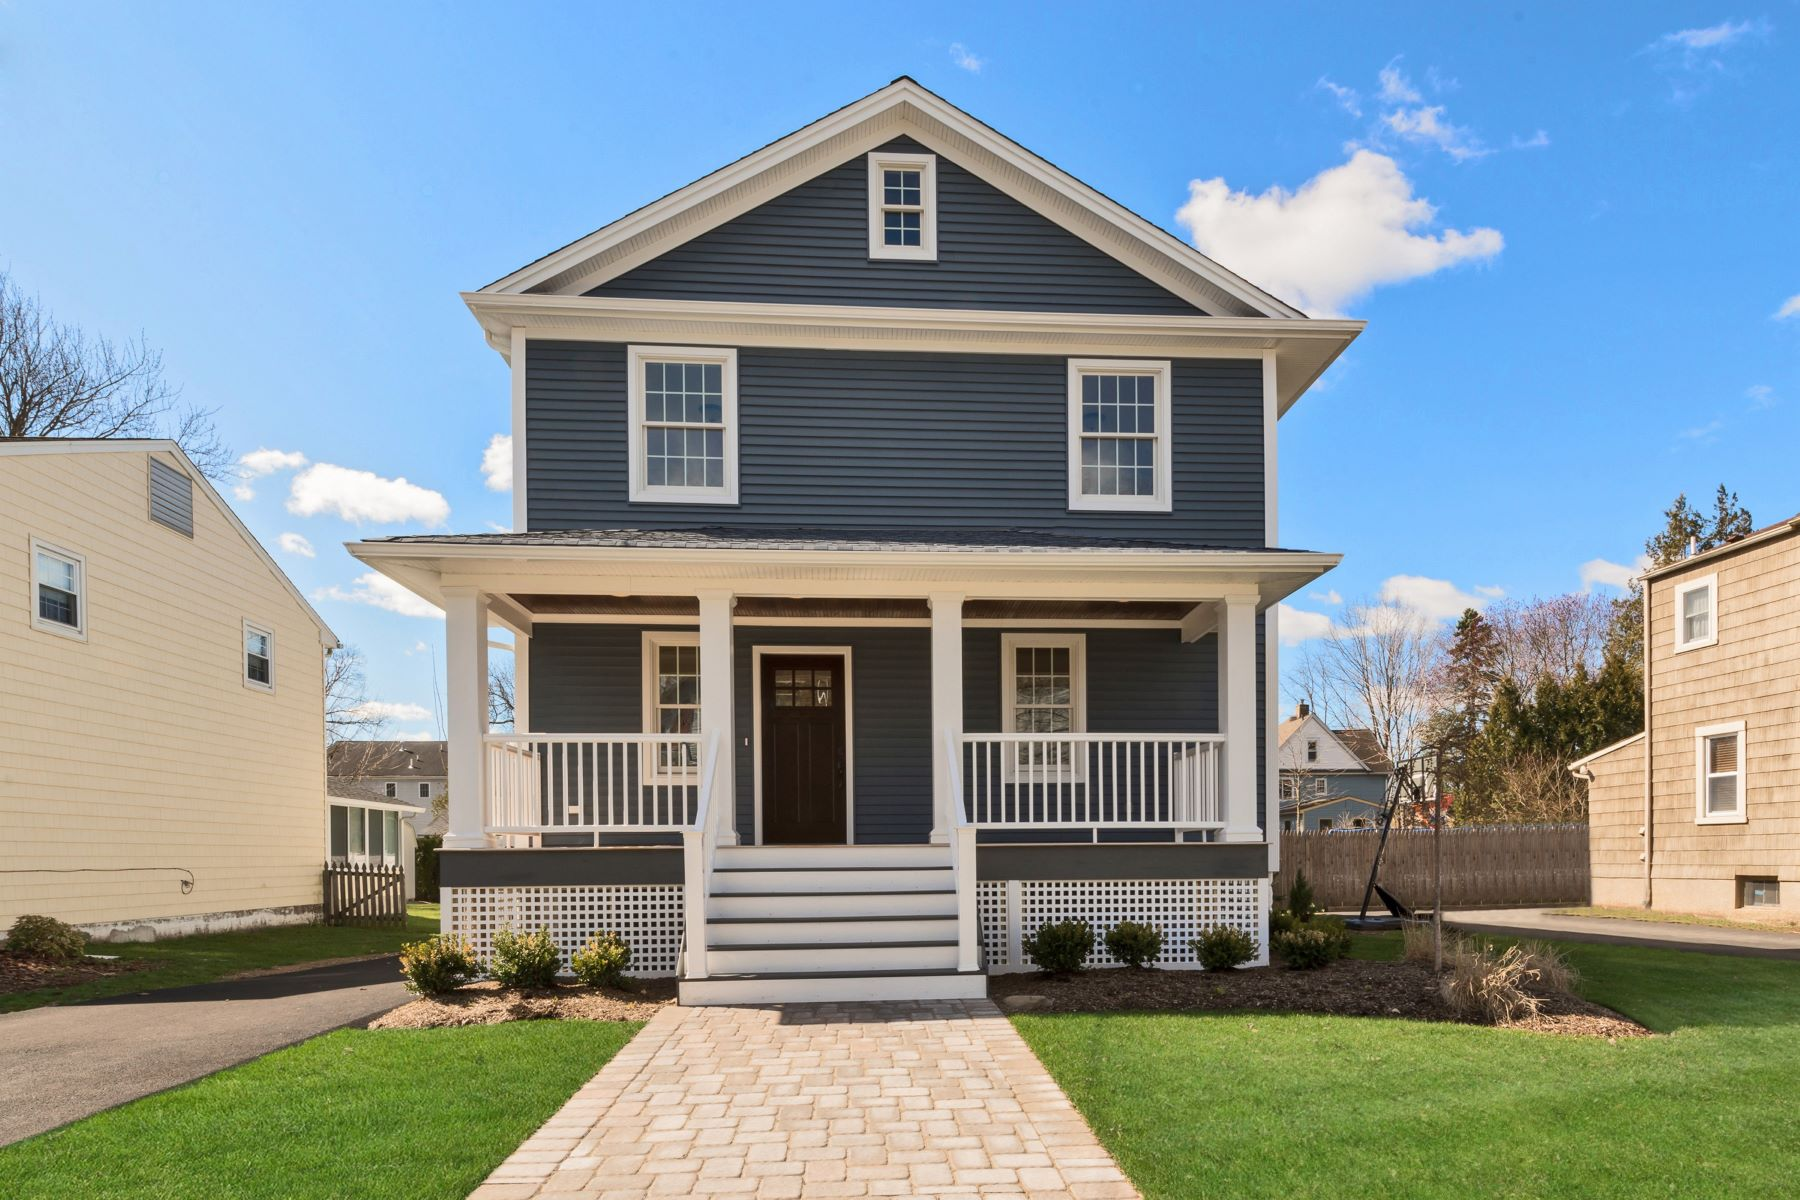 Single Family Home for Sale at Impressive New Construction 22 Bergen Avenue Waldwick, New Jersey 07463 United States